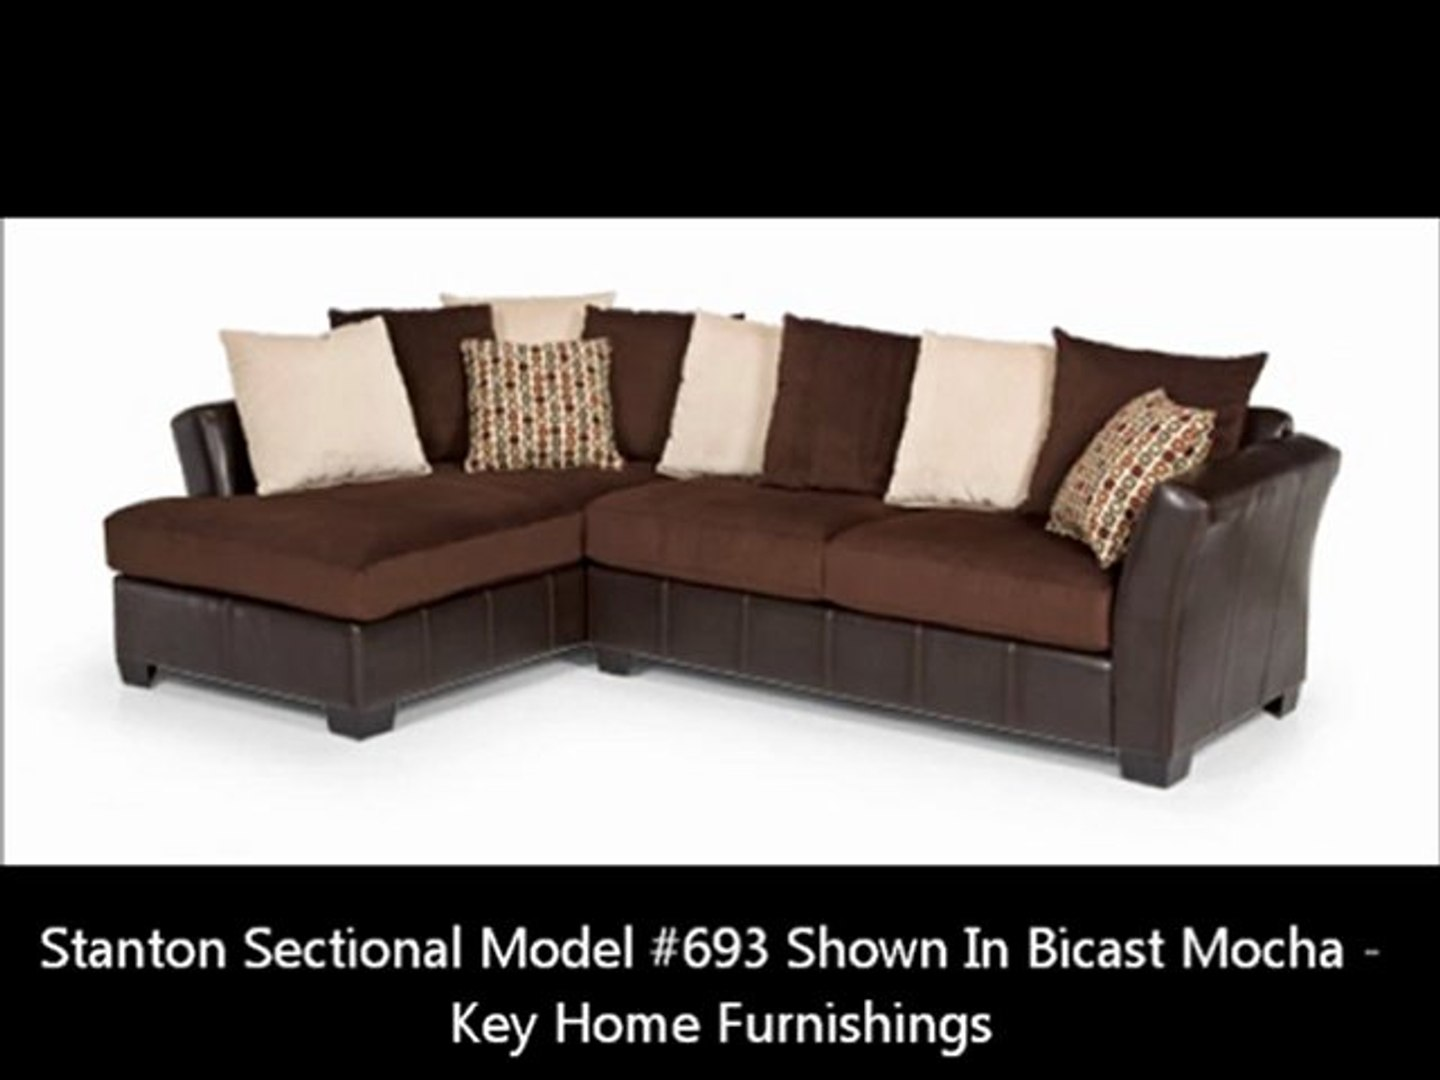 Fabulous Stanton Sectional Sofa Gallery Video Key Home Furnishings Portland Oregon Download Free Architecture Designs Scobabritishbridgeorg